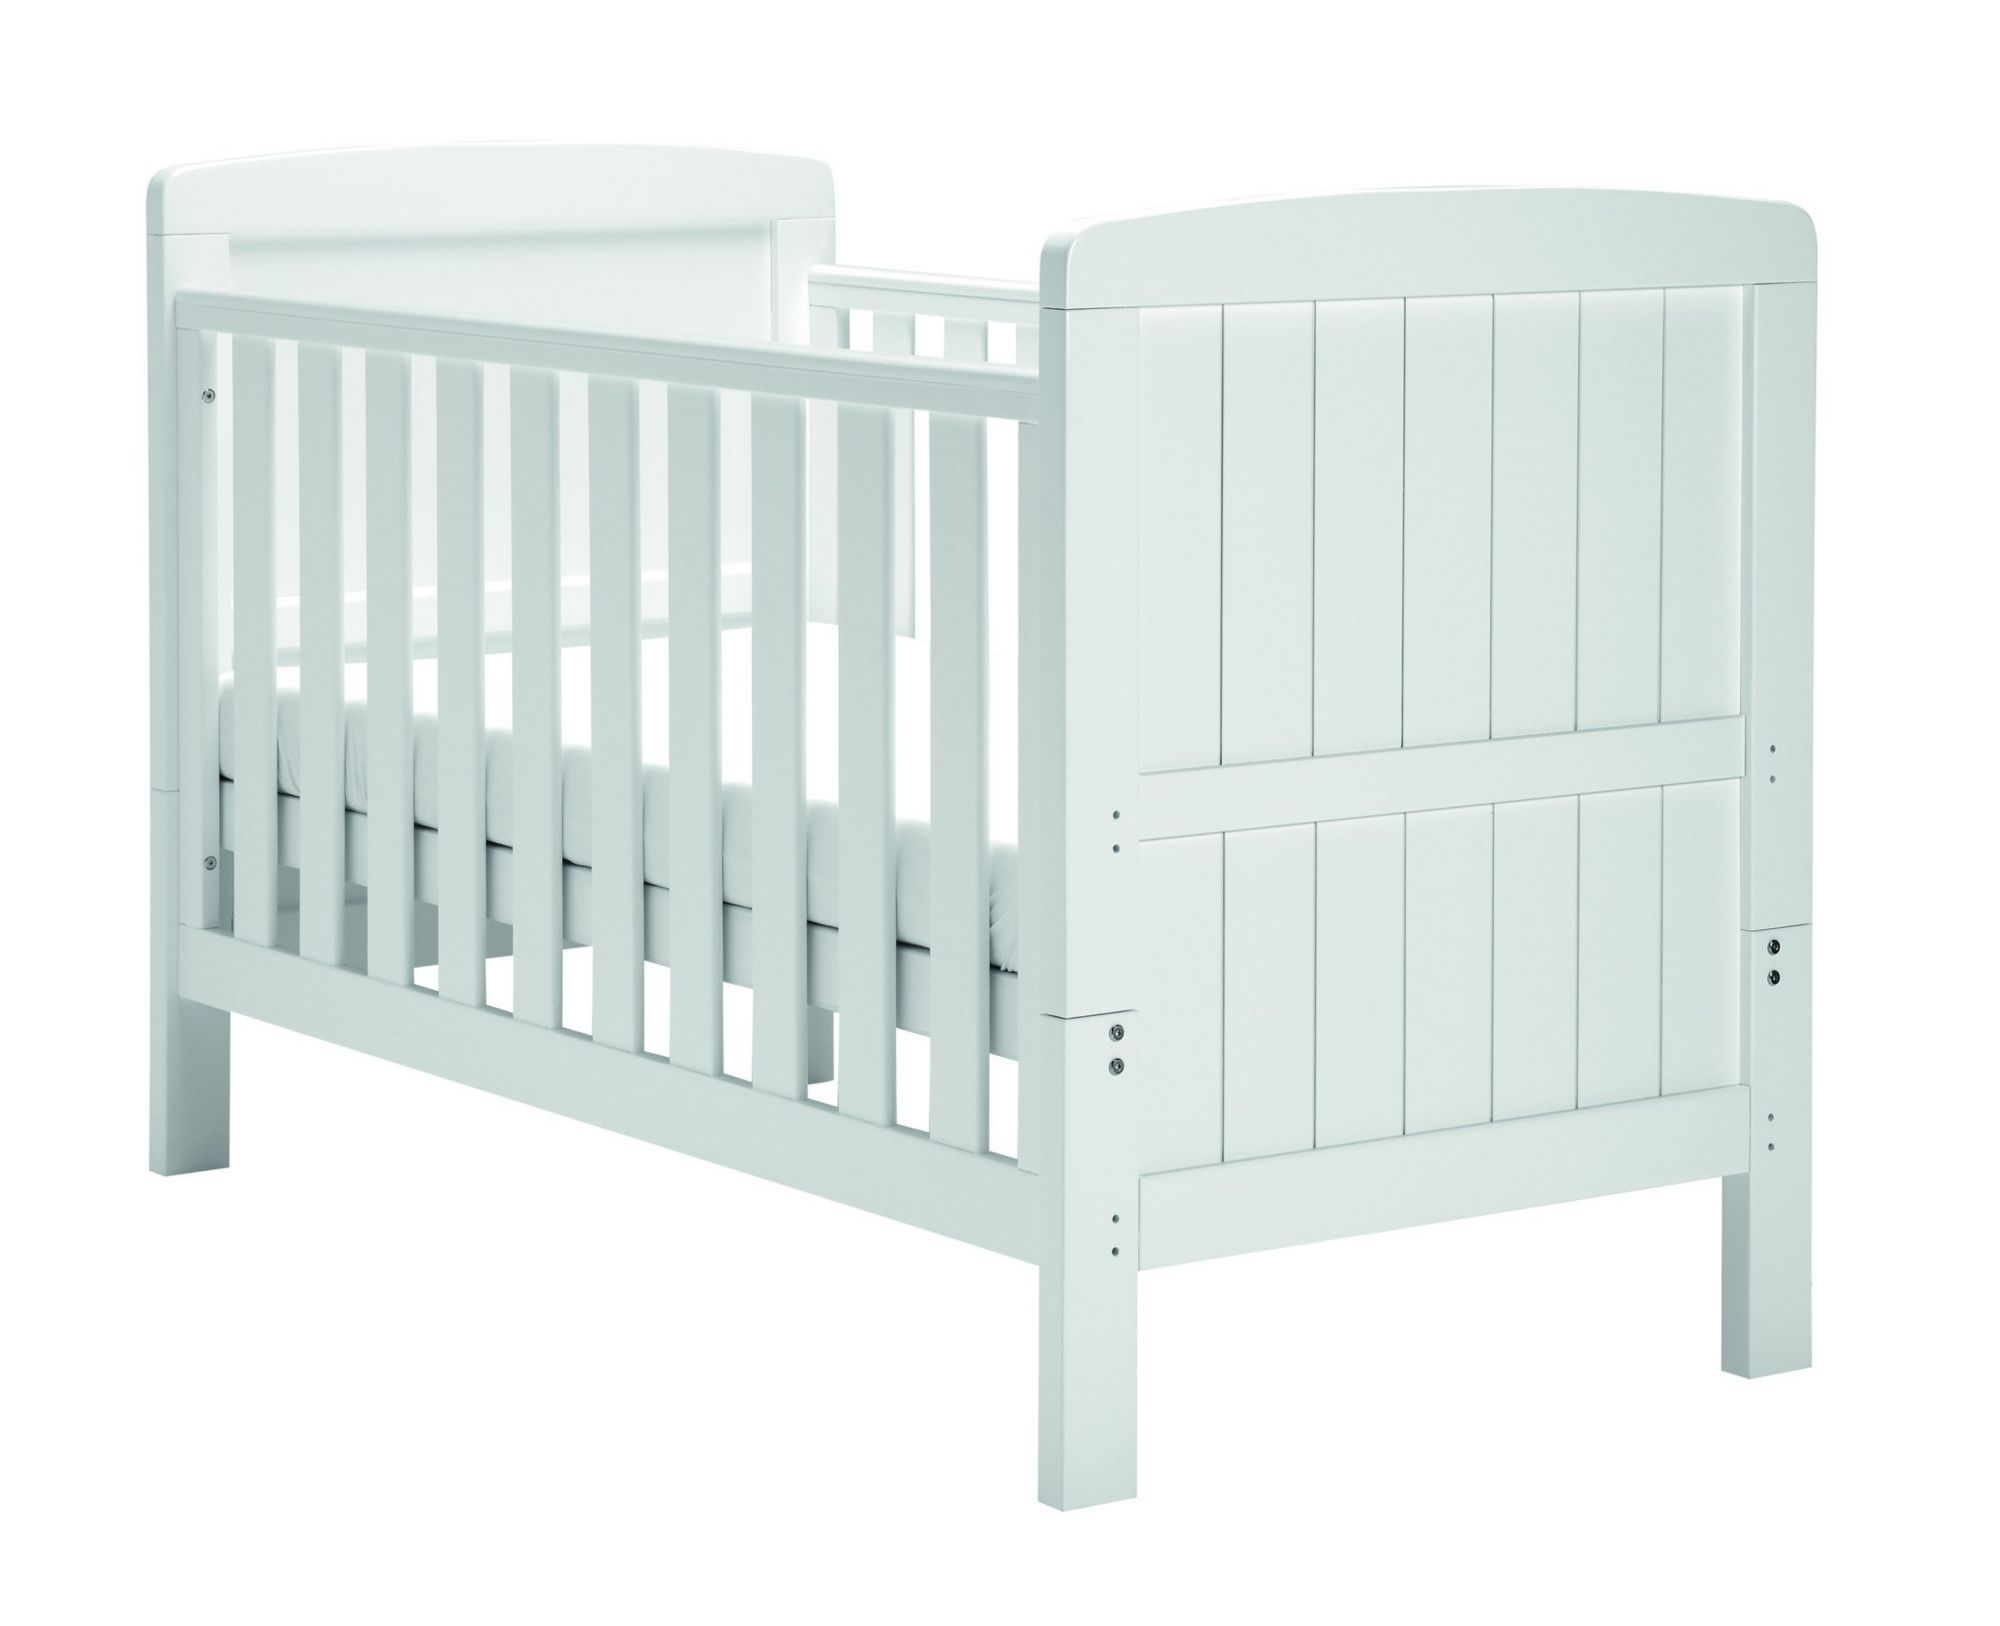 New White Wodden Baby Cot Bed drawer EASTERN SALE teething rails mattress